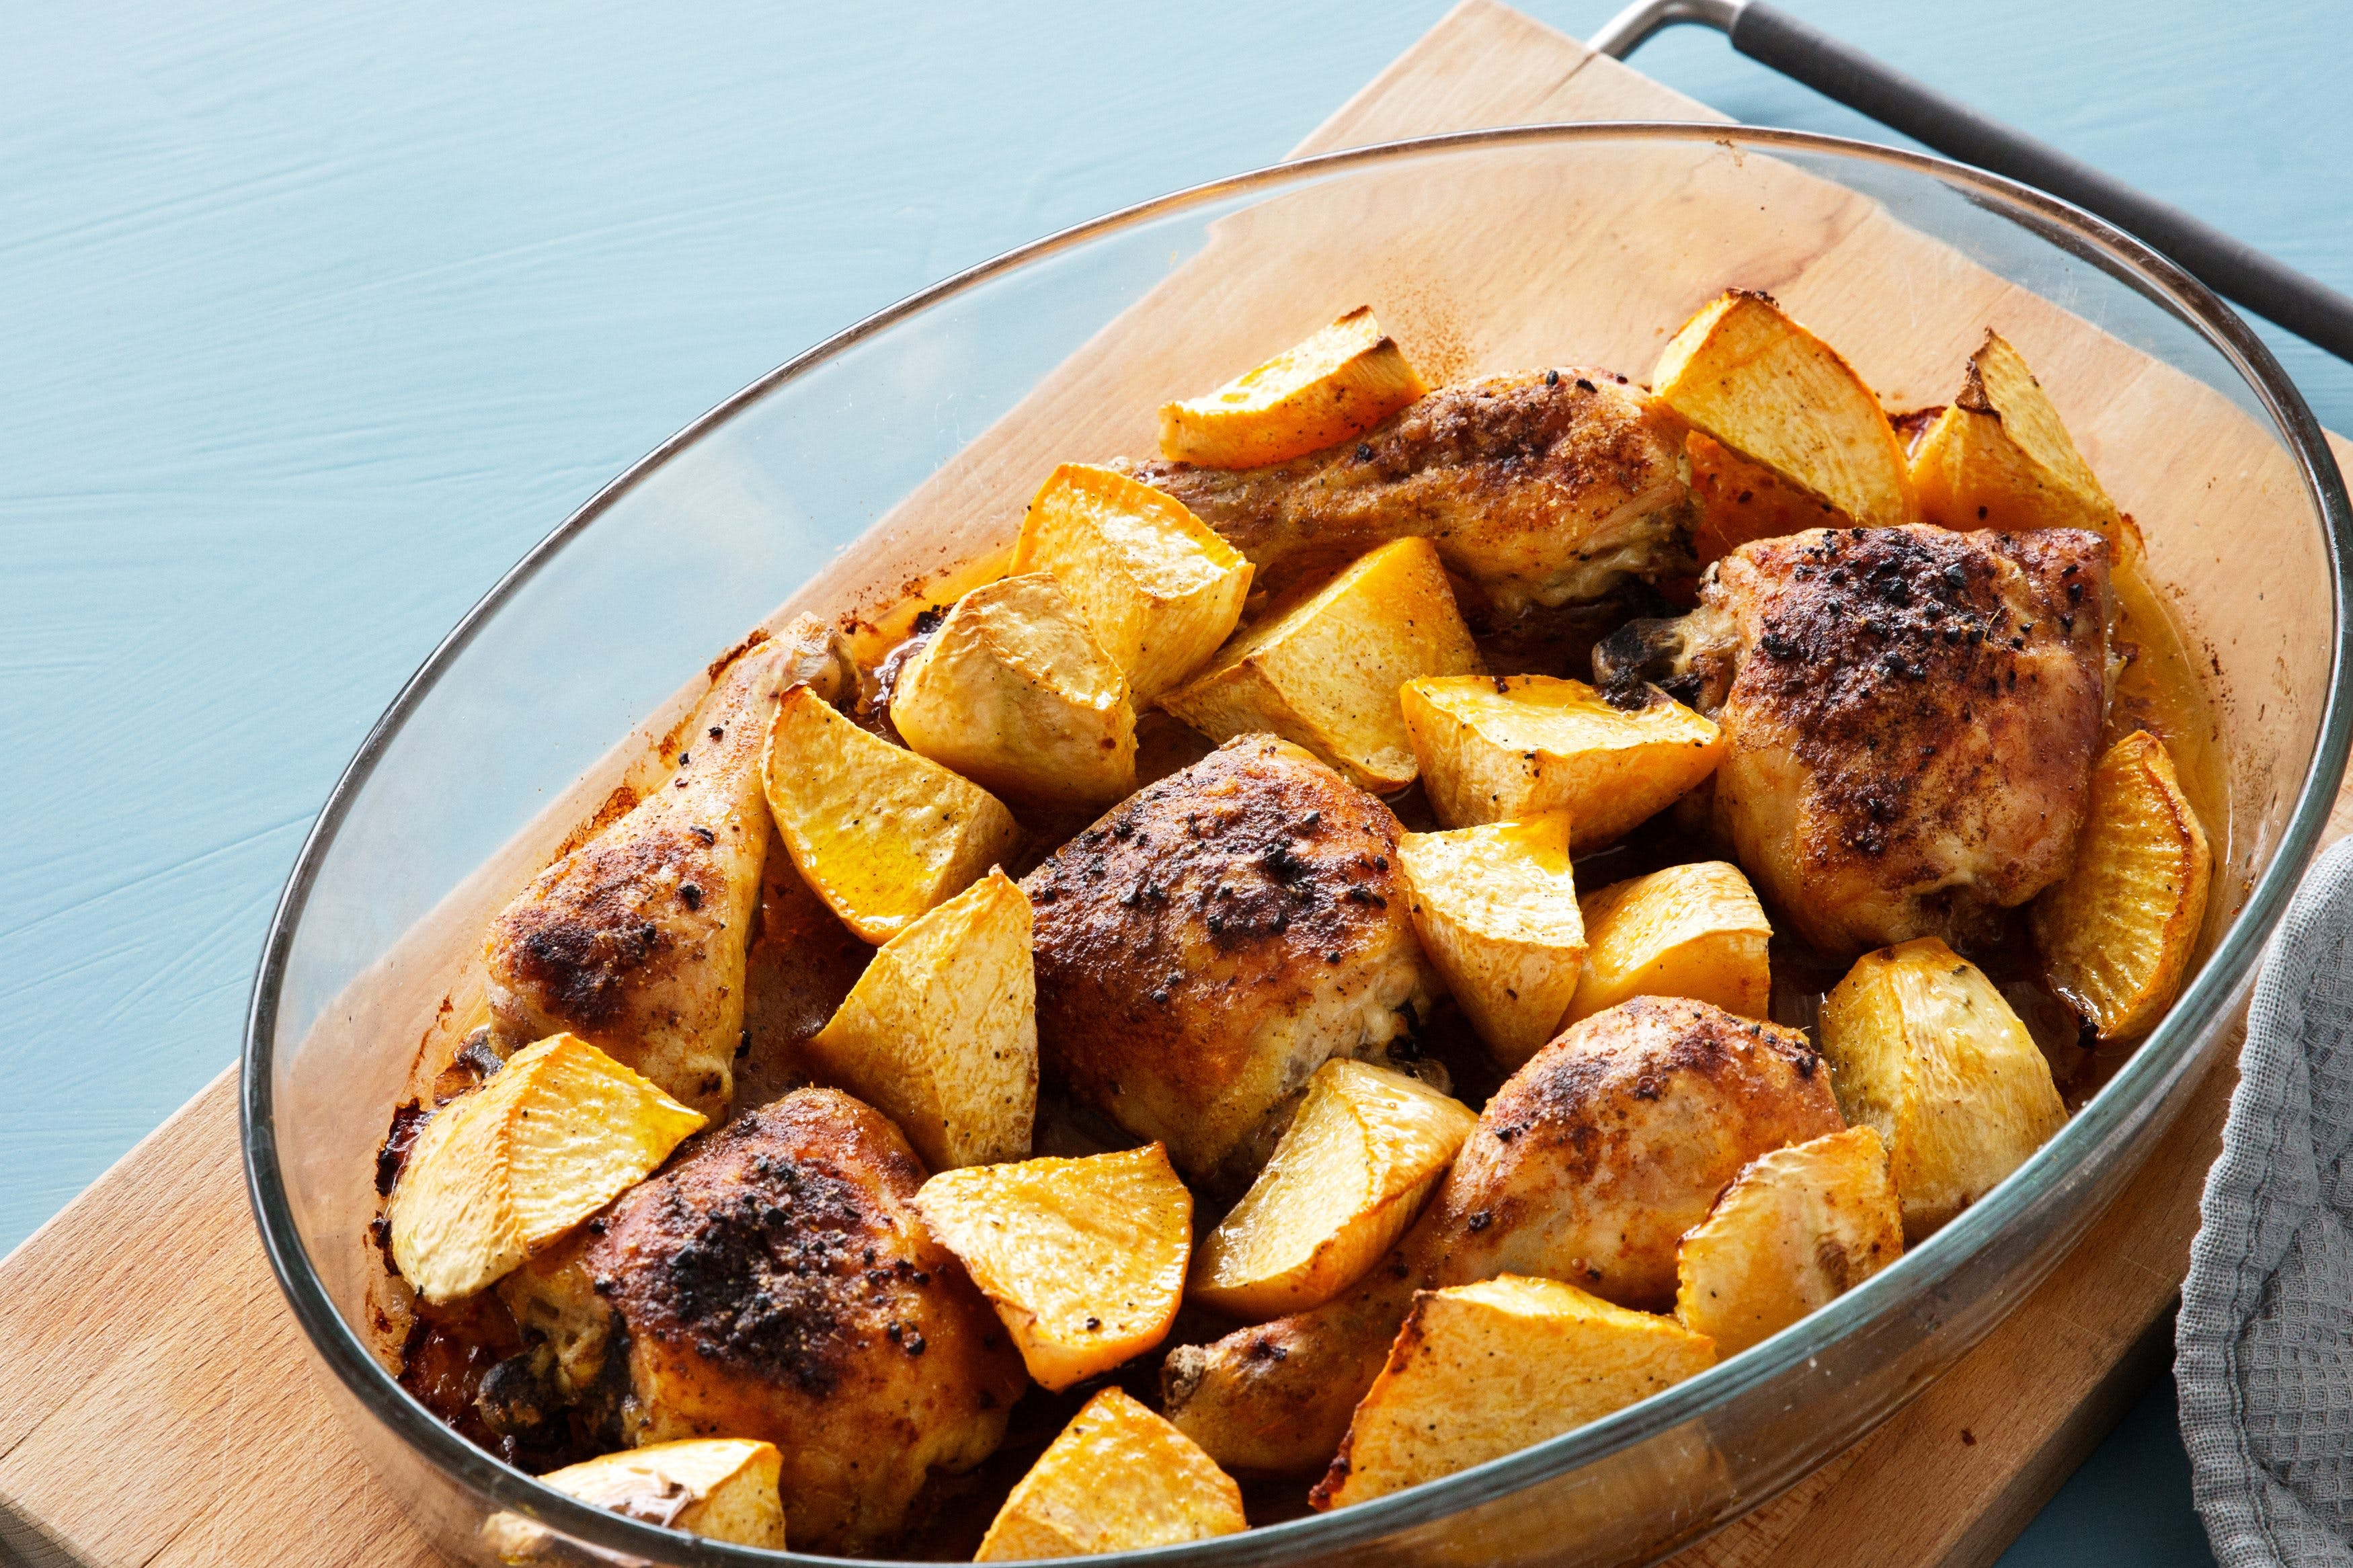 Oven-baked paprika chicken with rutabaga